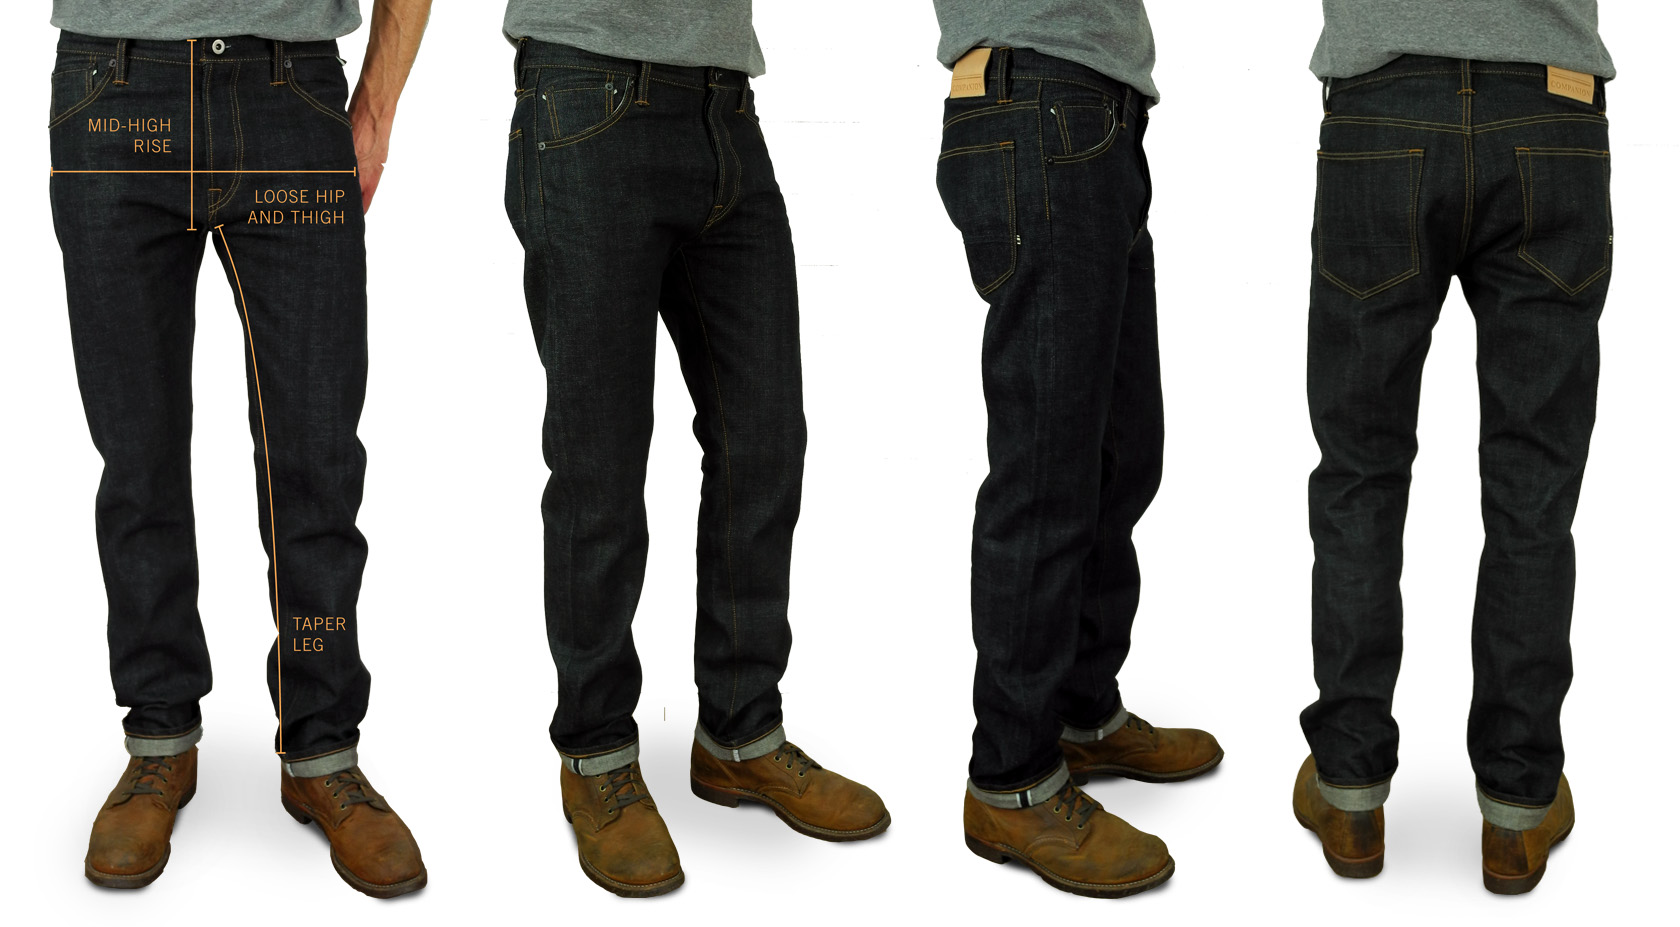 Companion Denim Taper Jan fit raw selvedge denim fits